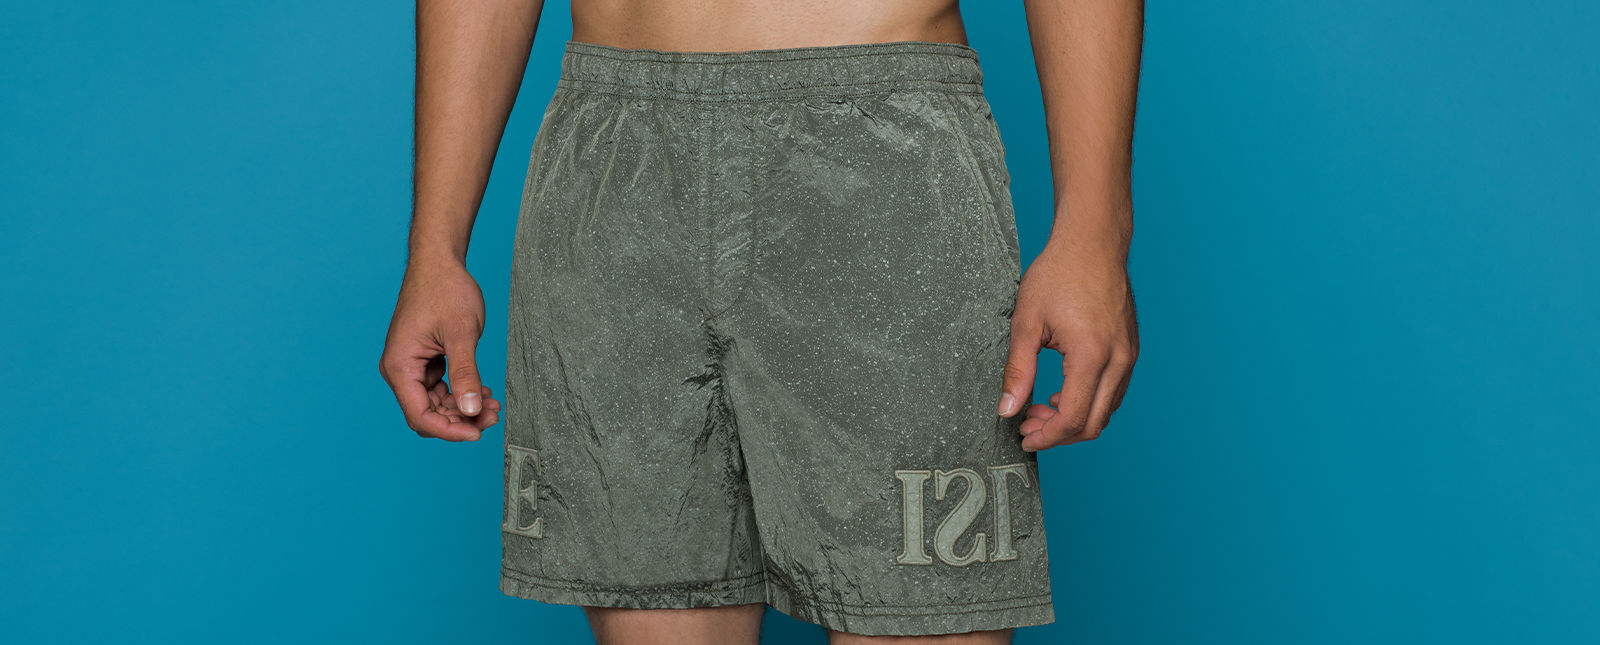 Model wearing speckled green swim shorts with elastic waistband, side pockets, and lettering on the lower leg.